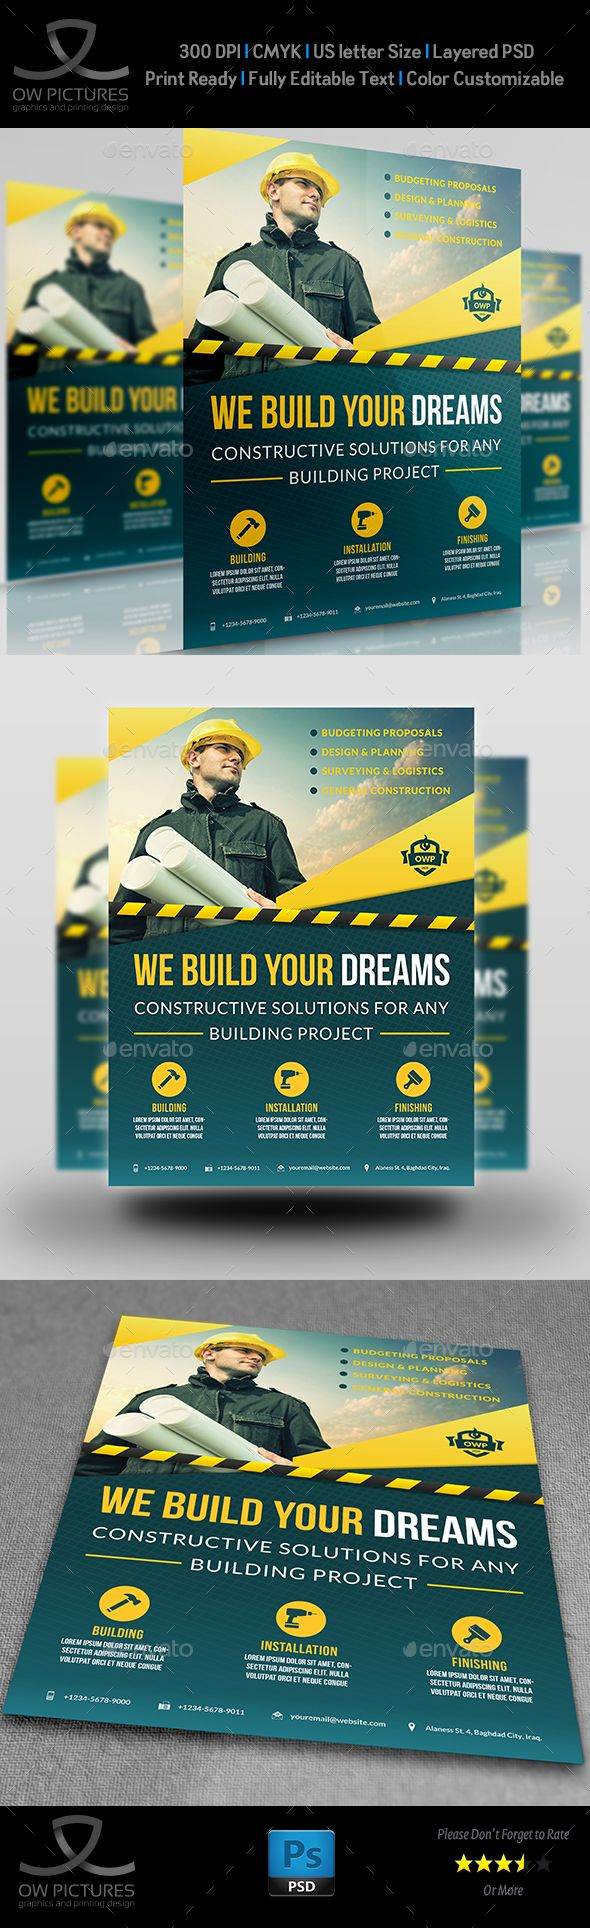 25 best ideas about psd download on pinterest psd graphics psd free download and psd photo for Pinterest template psd